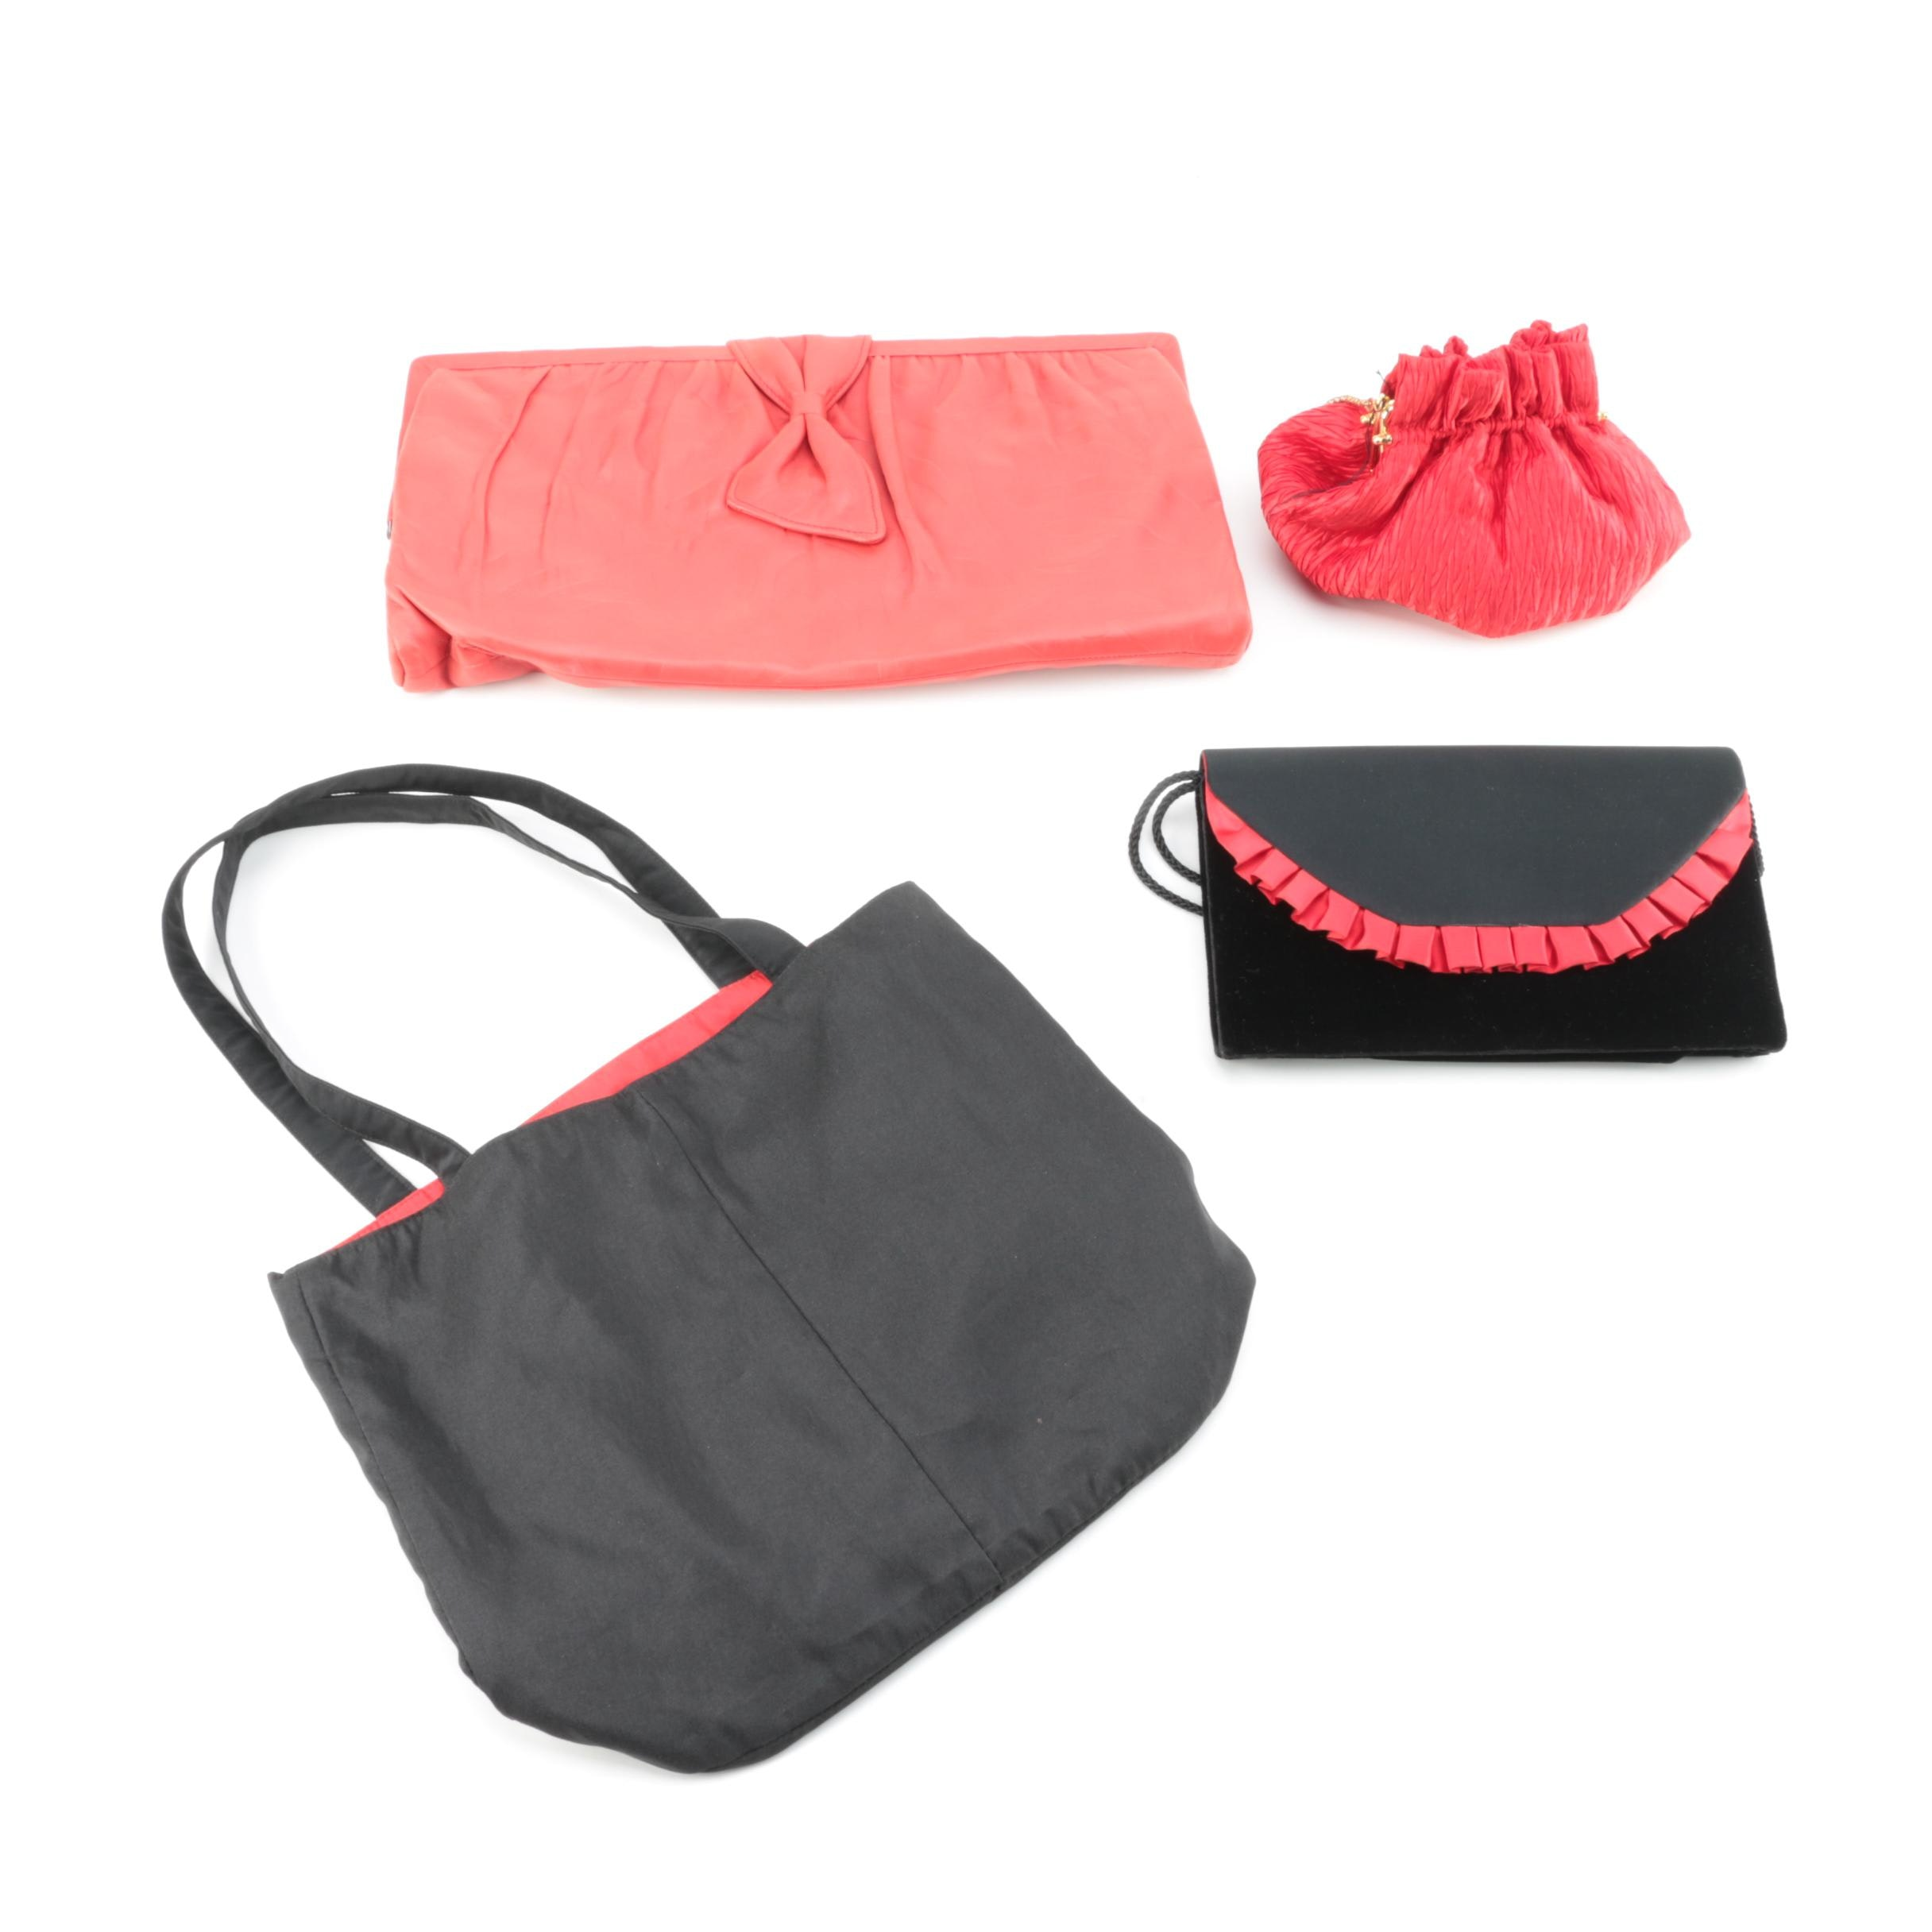 Clutch Evenings Bags with Tote Including Bloomingdale's